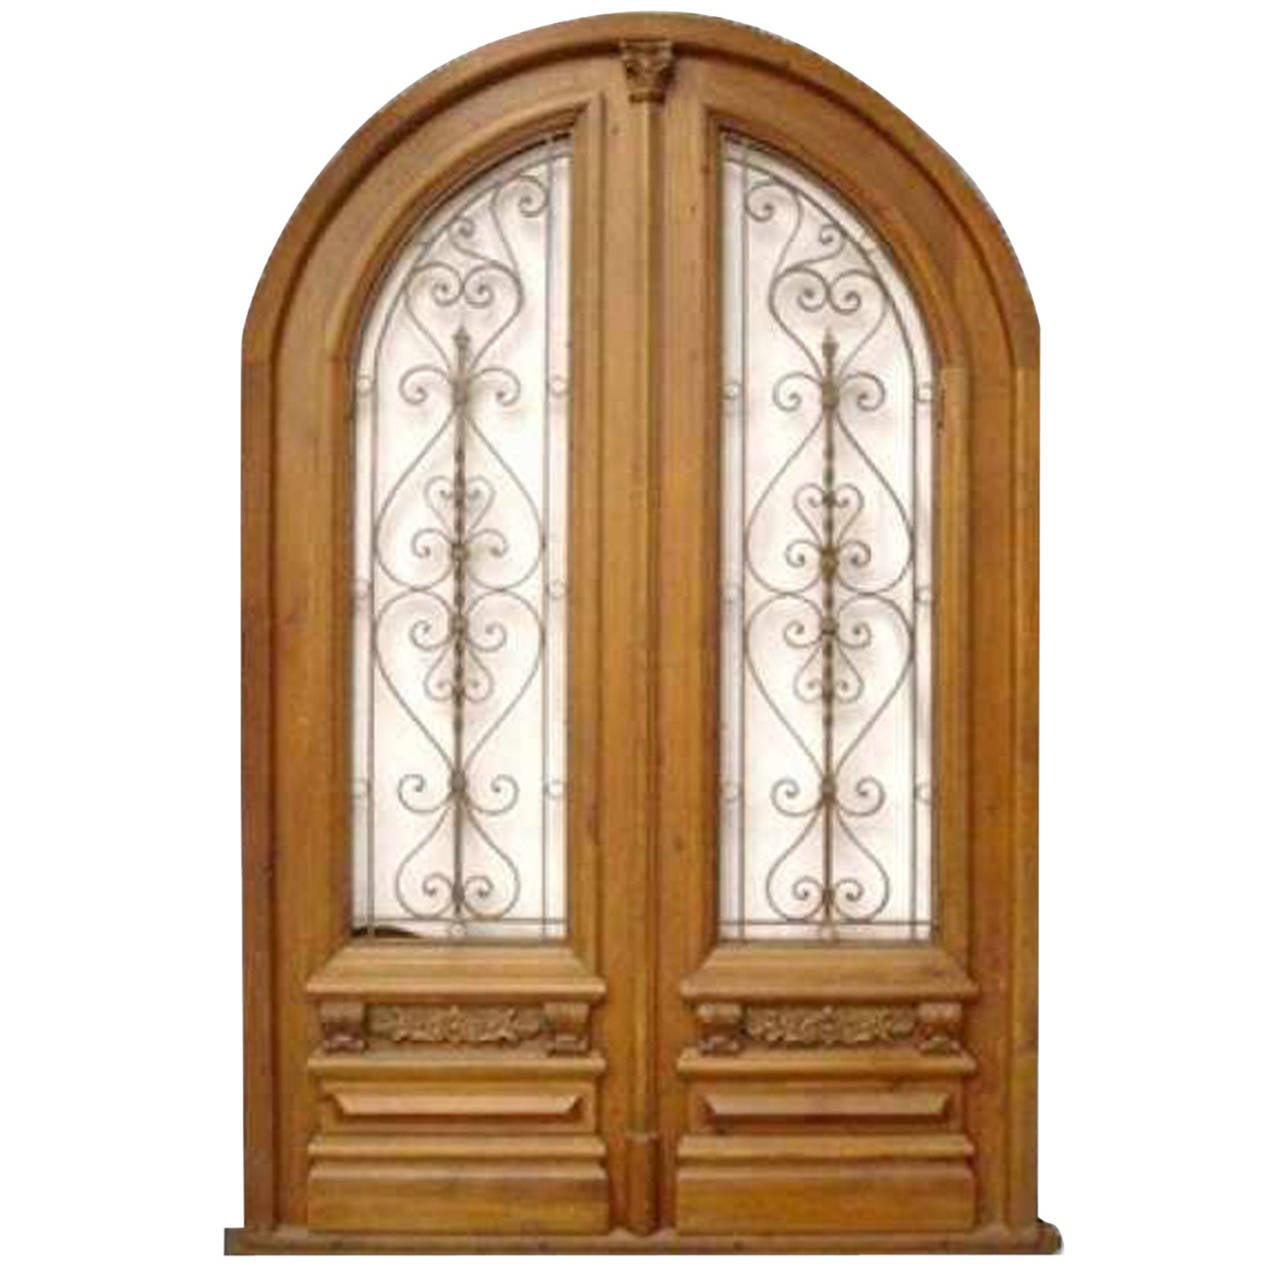 1280 #4B2107 Antique Arched Double Entry Door Offered By Amighini Architectural  save image Arch Doors Exterior 39771280